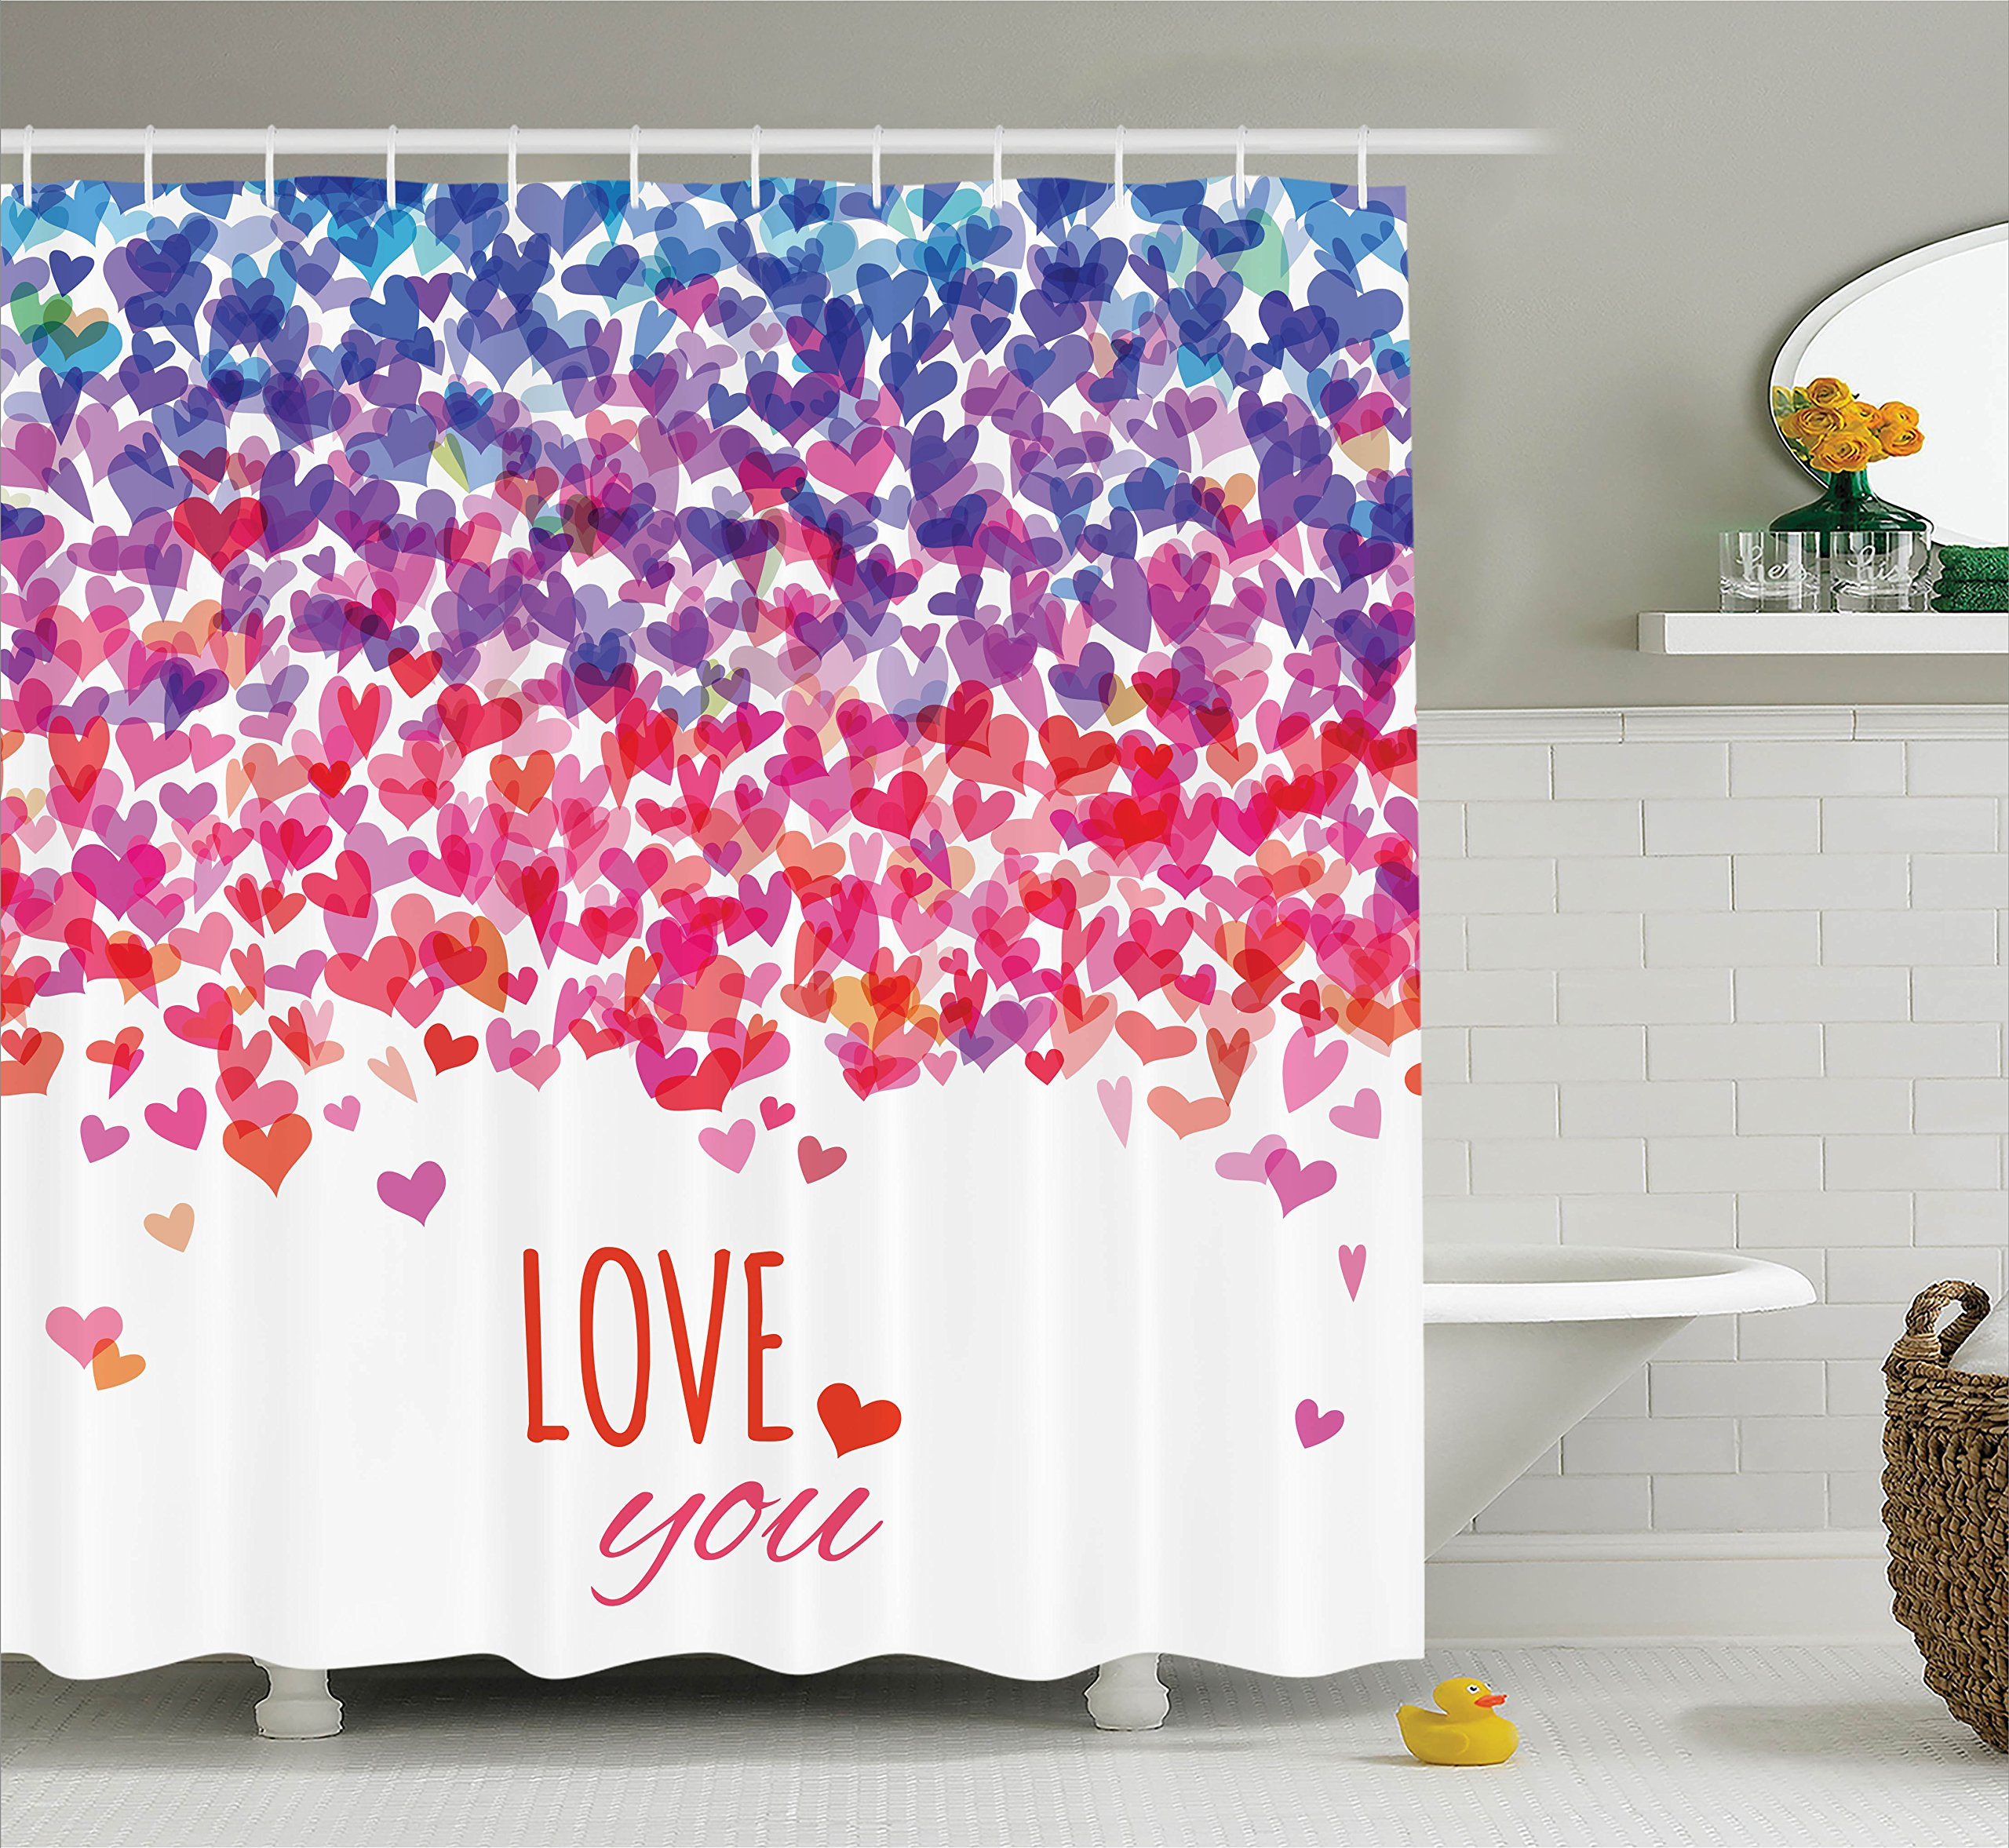 Ambesonne Love Shower Curtain by, Hearts and Love You Message Romantic Valentine's Day Inspired Springtime Cheerful Art, Fabric Bathroom Decor Set with Hooks, 75 Inches Long, Multicolor